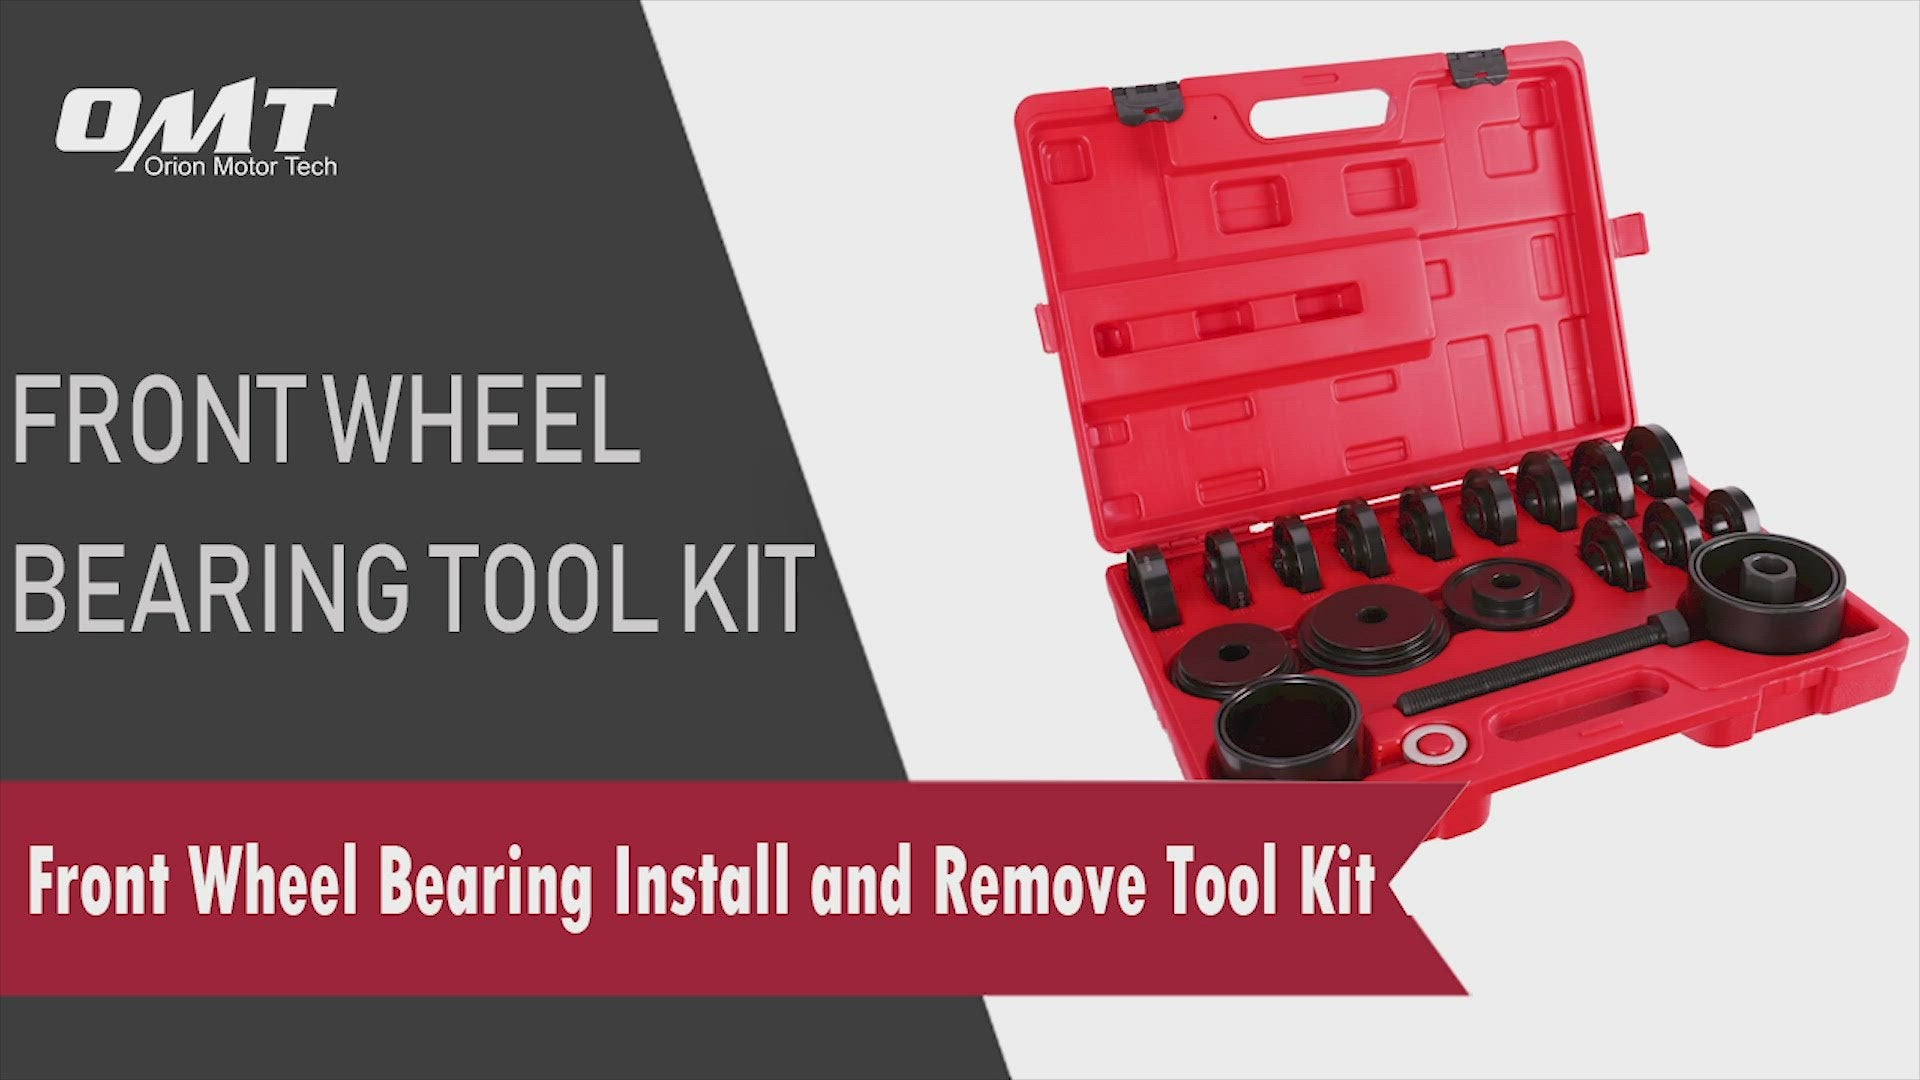 23-Piece Front Wheel Drive Bearing Removal Kit, Adapter Puller Press Replacement Tools with Portable Carrying Case, Steel Construction